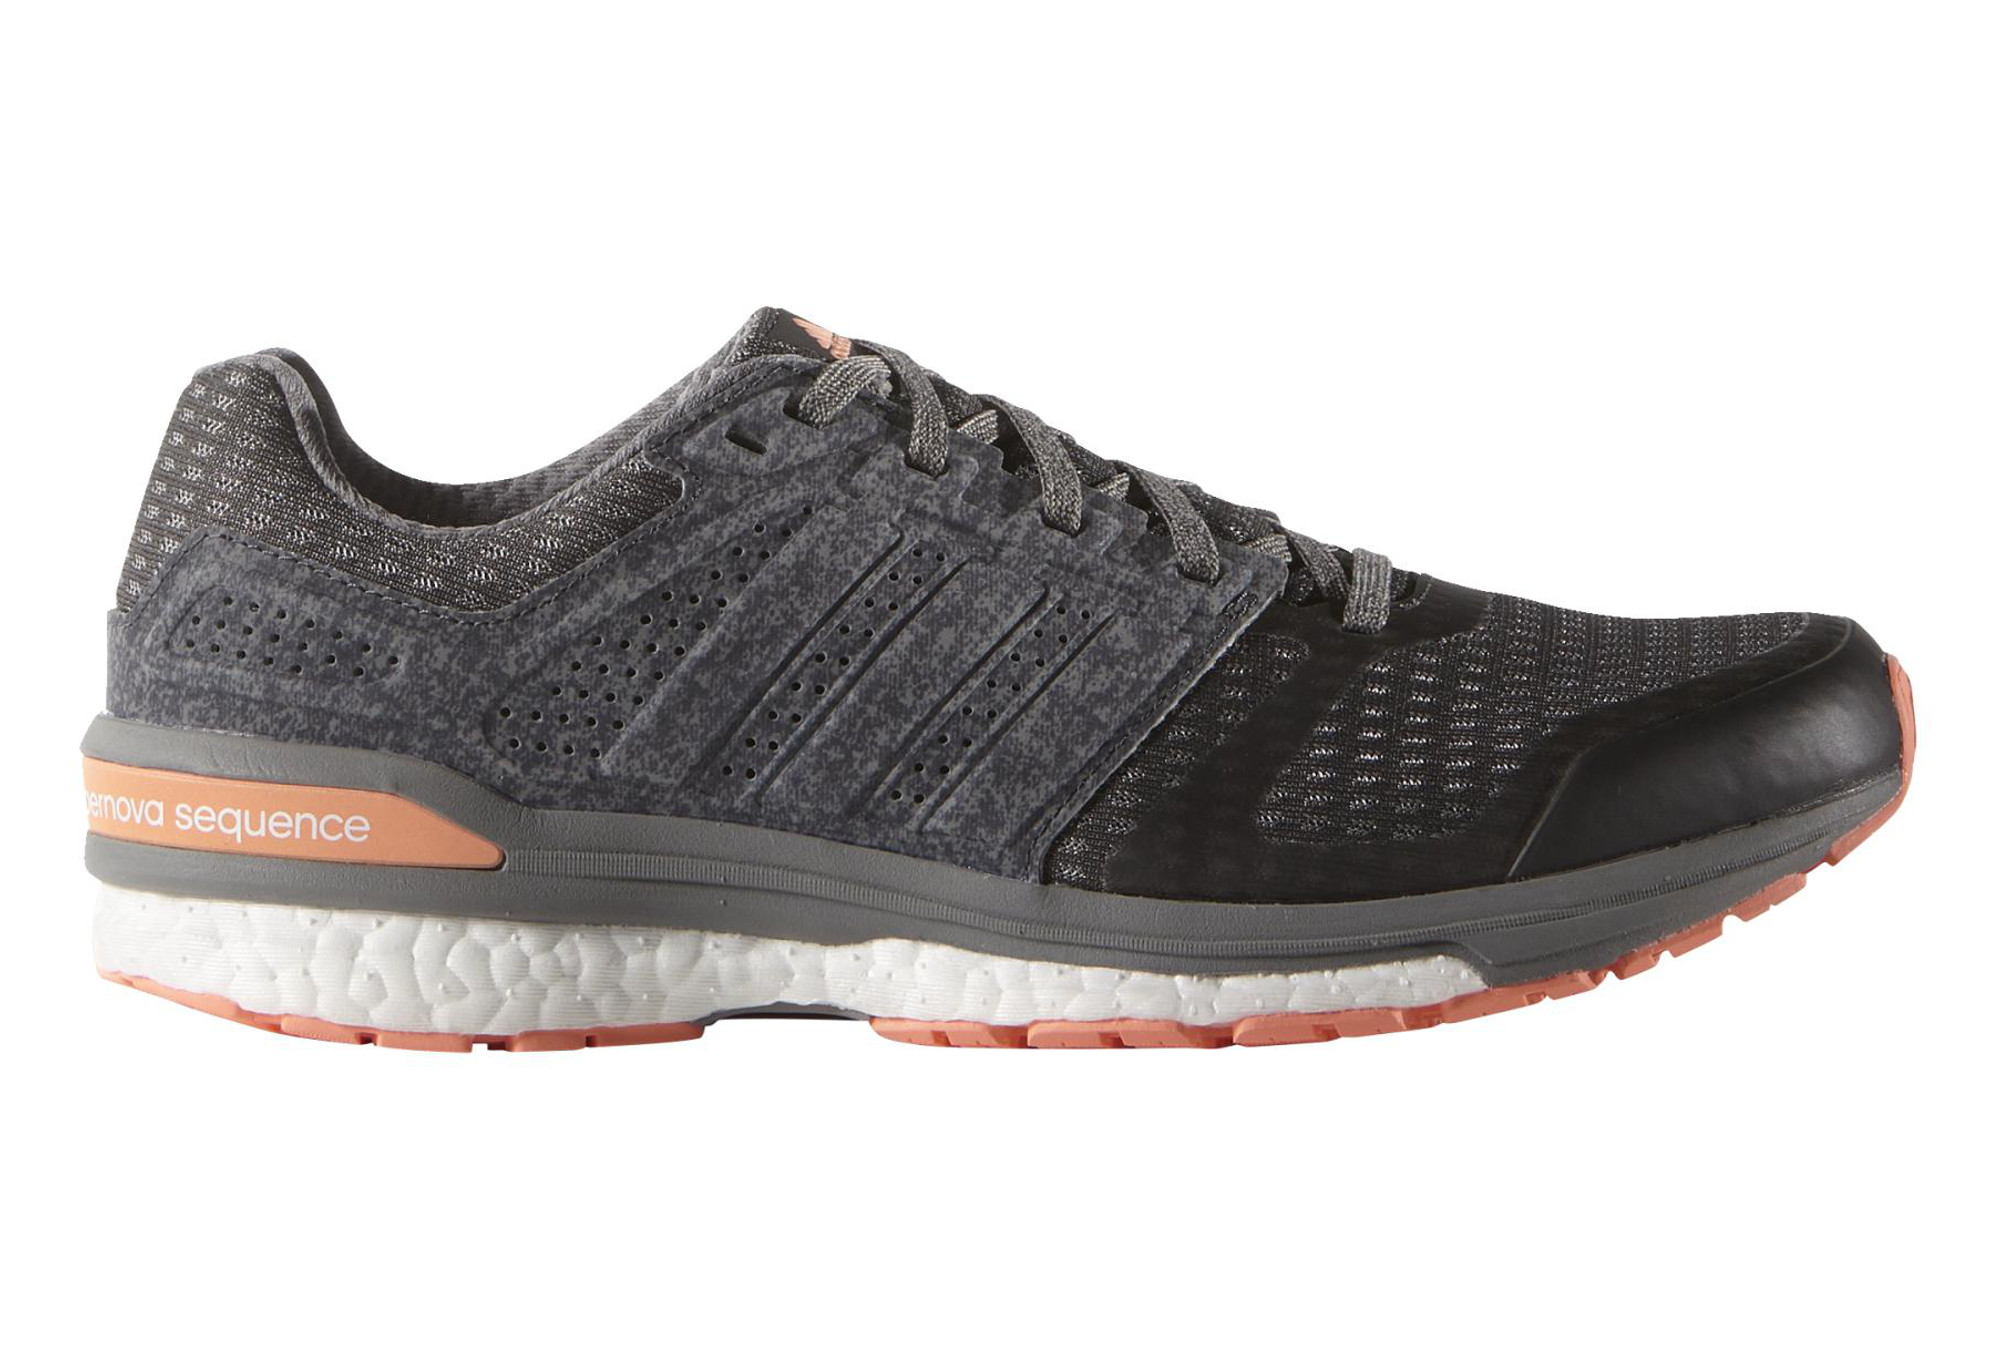 super popular 457eb 9405d adidas SUPERNOVA SEQUENCE BOOST 8 Pair of Shoes Grey Pink Women